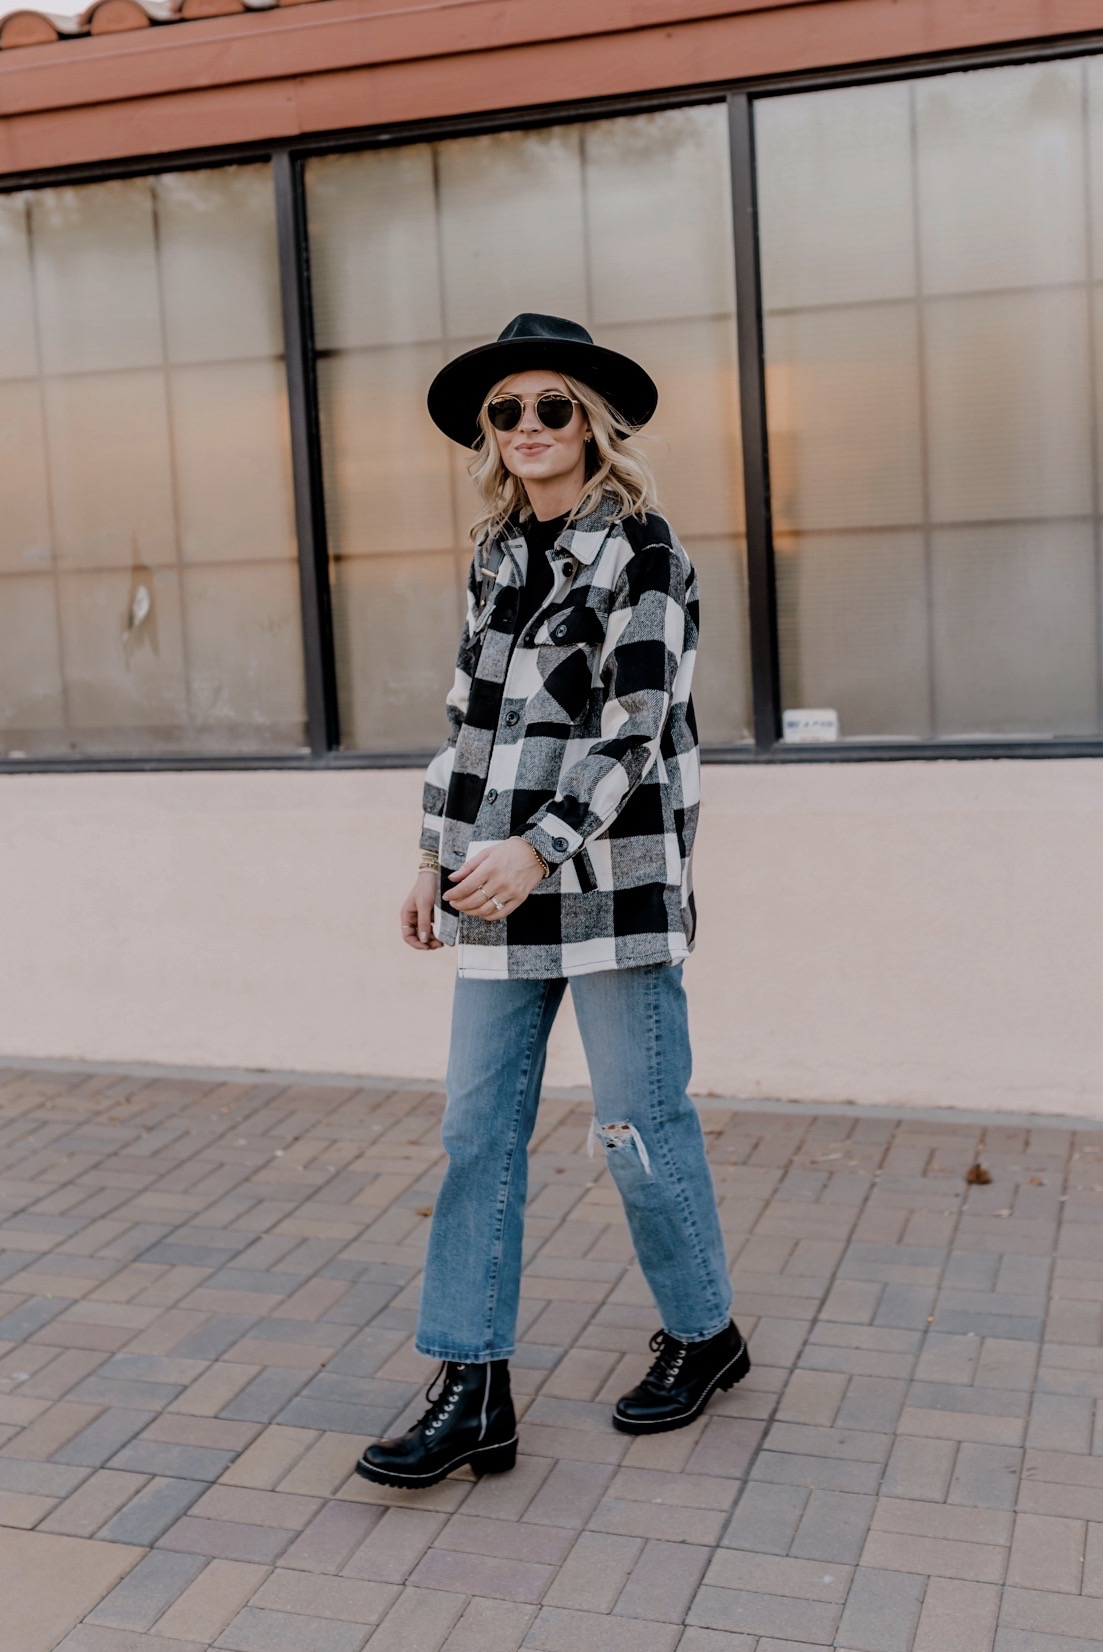 Shirt Jackets by popular San Diego fashion blog, Navy Grace: image of a woman standing outside and wearing a black and white buffalo plaid shirt jacket, Free People Levi's ribcage denim,AQUA Women's Jax Combat Boots, Free PeopleModern Turtleneck Top, and Ray-Ban sunglasses.